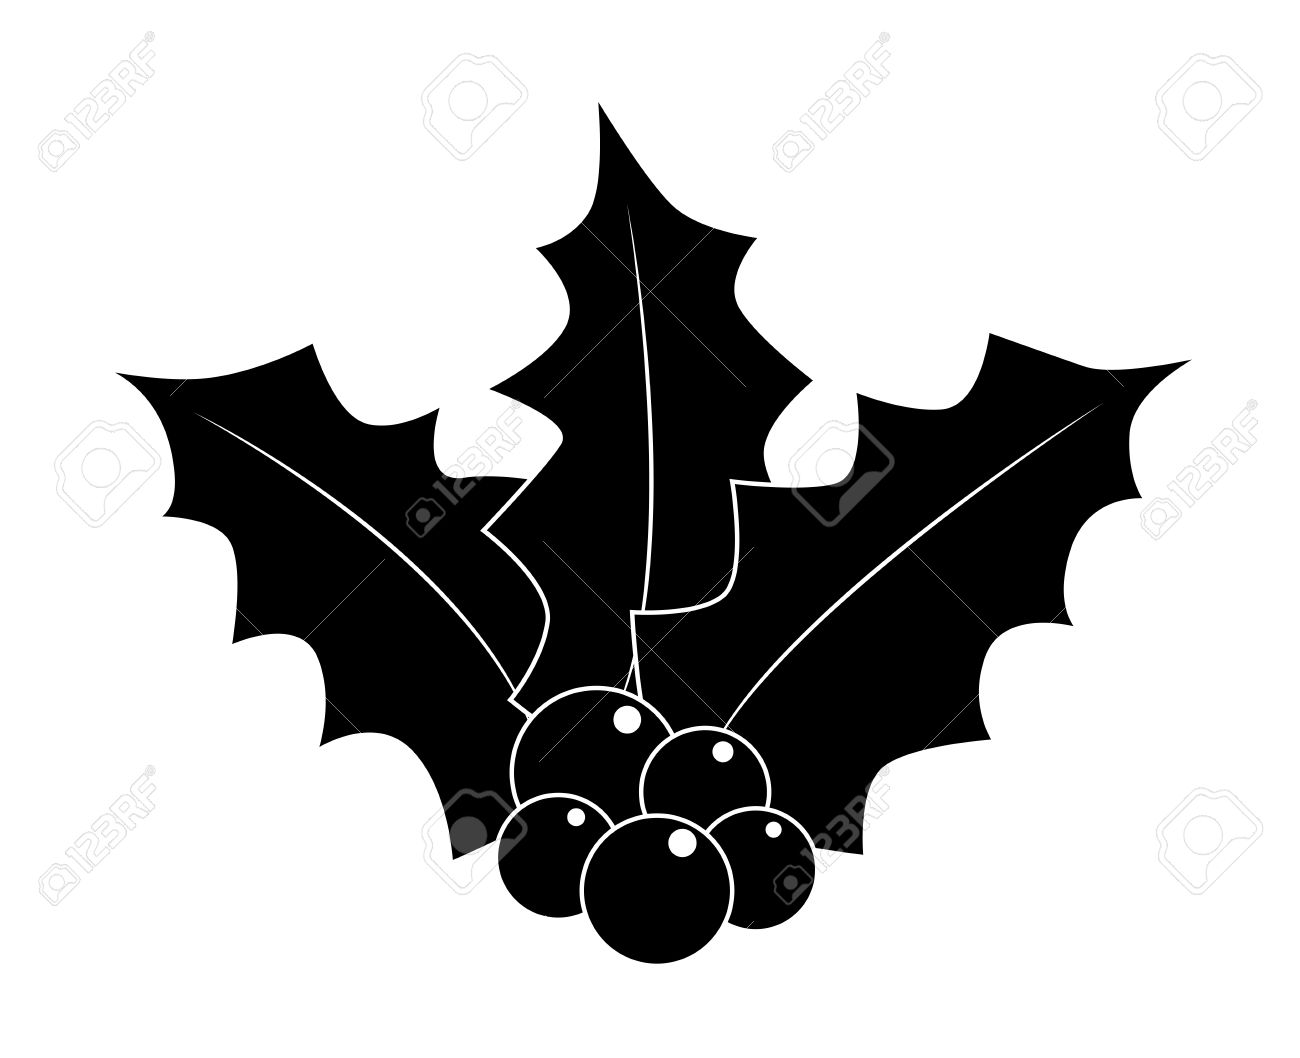 Christmas Holly Silhouette.Holly Berry Silhouette Christmas Leaves And Fruits Icon Symbol